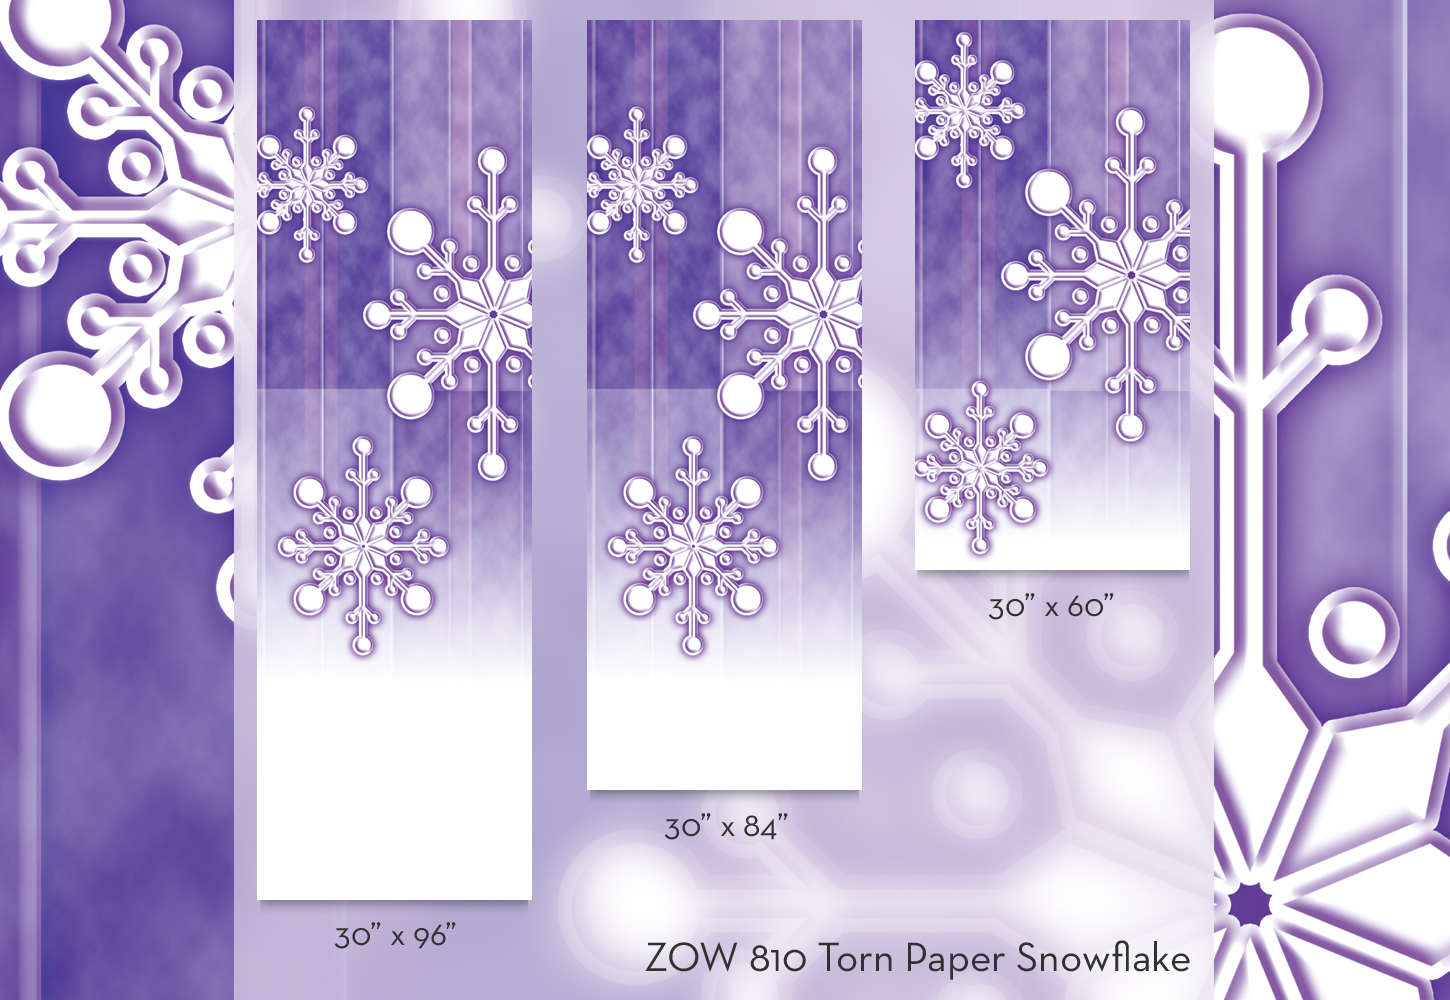 ZOW 810 Torn Paper Snowflake